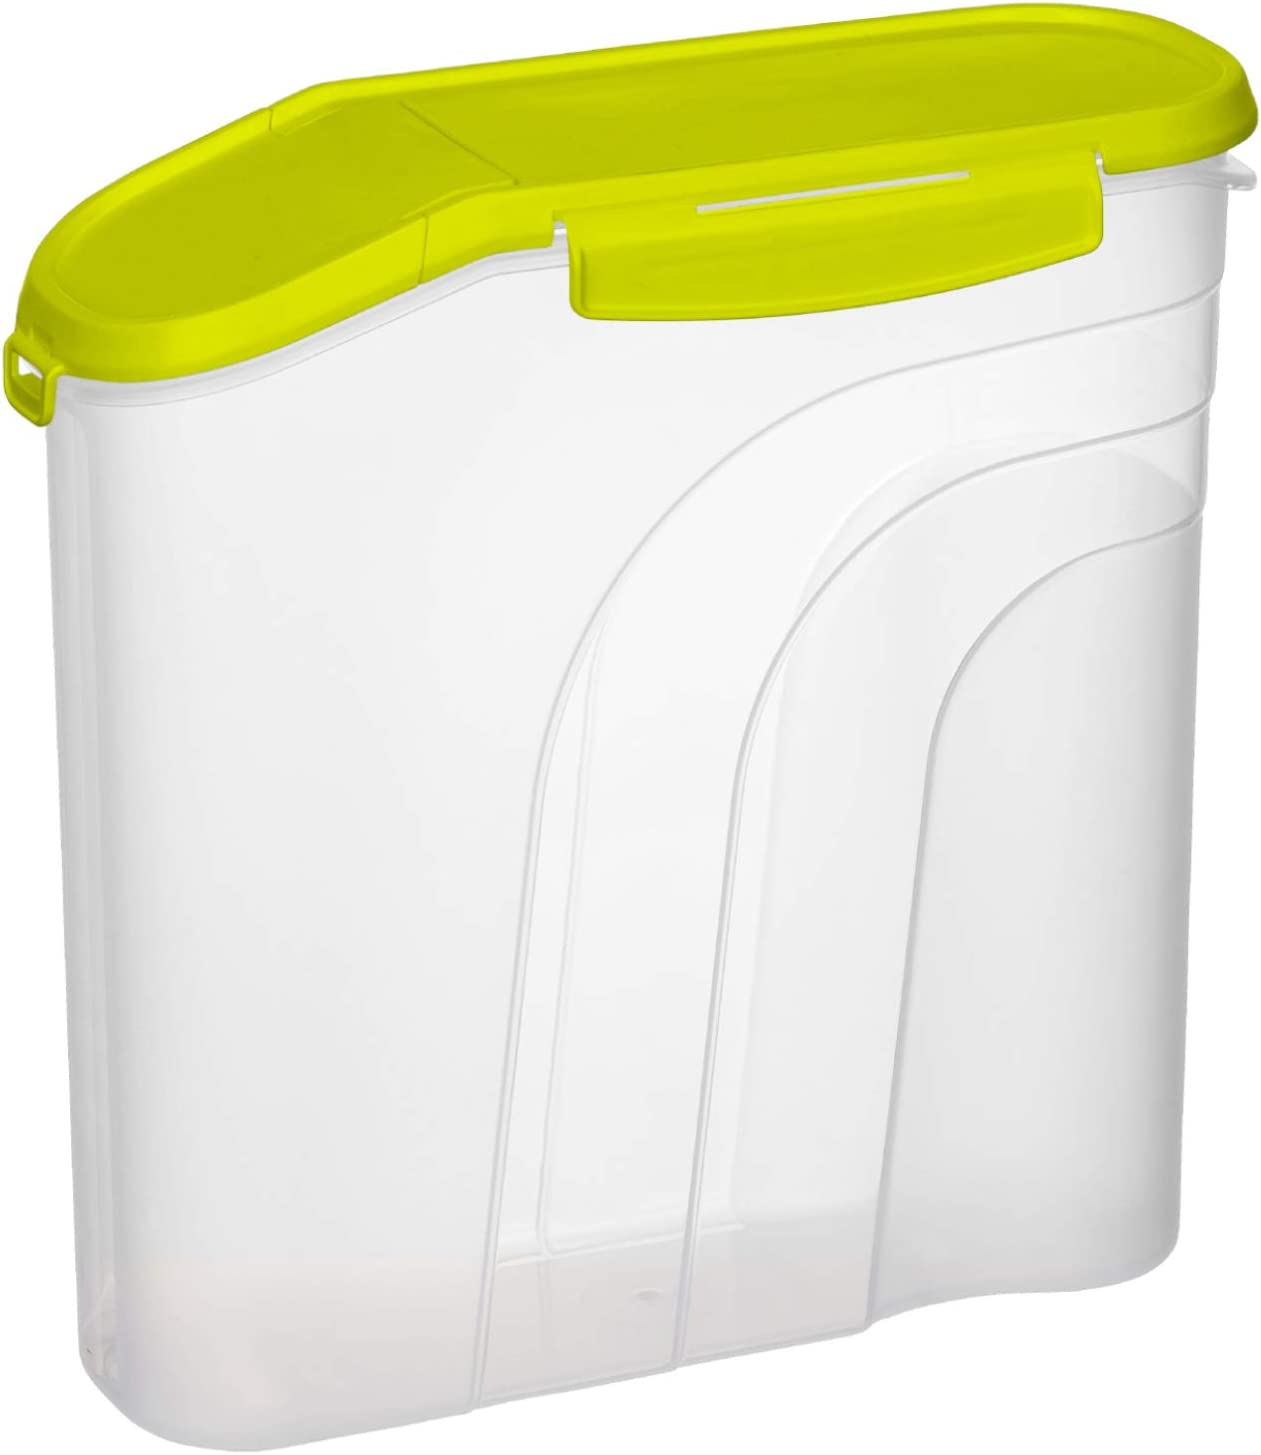 Rotho Mueslibox 2.2l with Aroma-Proof lid and Pouring Opening PP Transparent//Green Plastic BPA-free 2,2l 22 x 8 x 22 cm